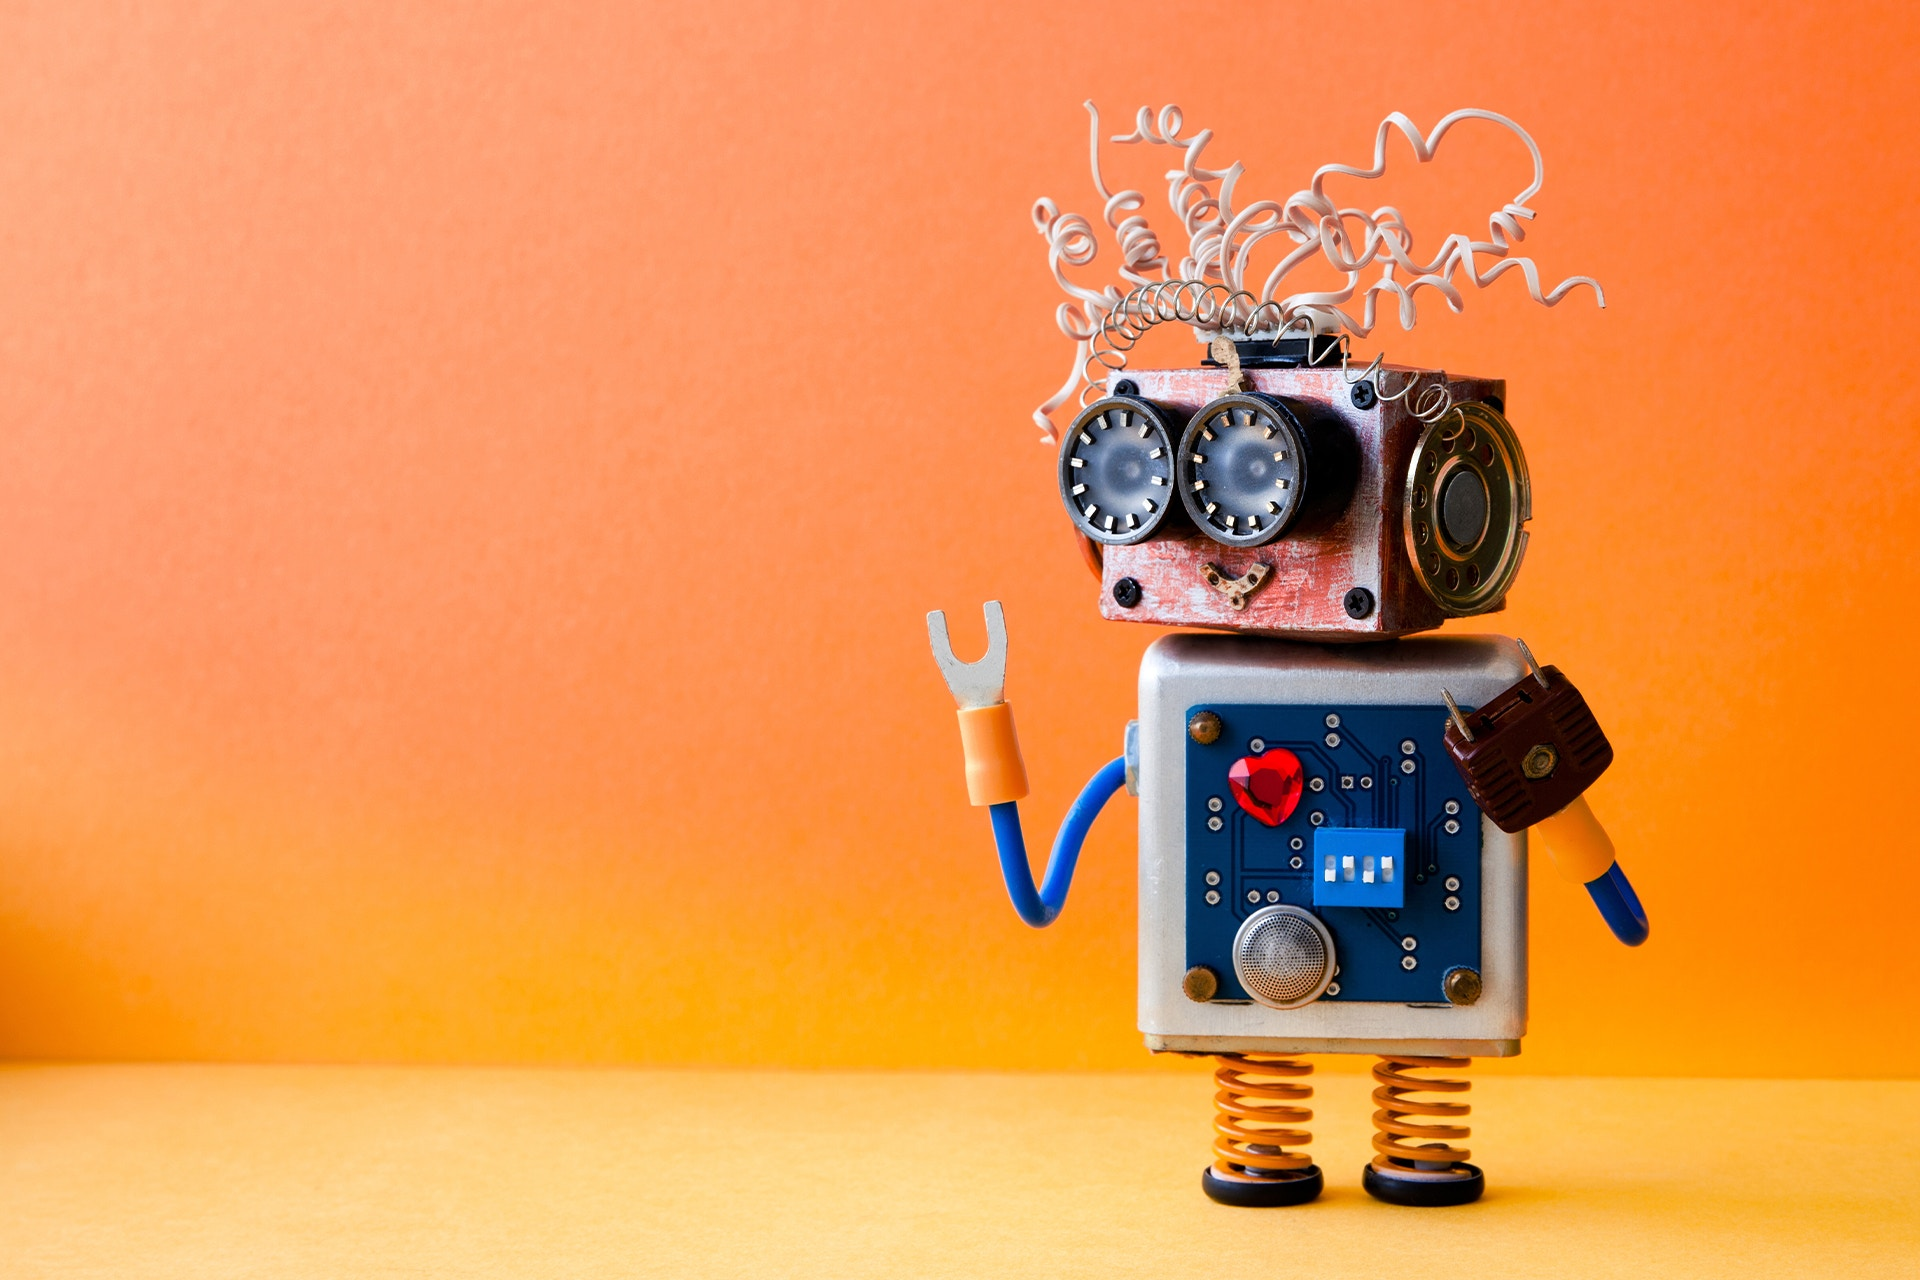 A toy robot that has been made using scraps of pieces from different machines or mechanical parts, like springs, electrical plugs, and wires. He could be social-savvy bot answering questions around how to build similar social media bots.